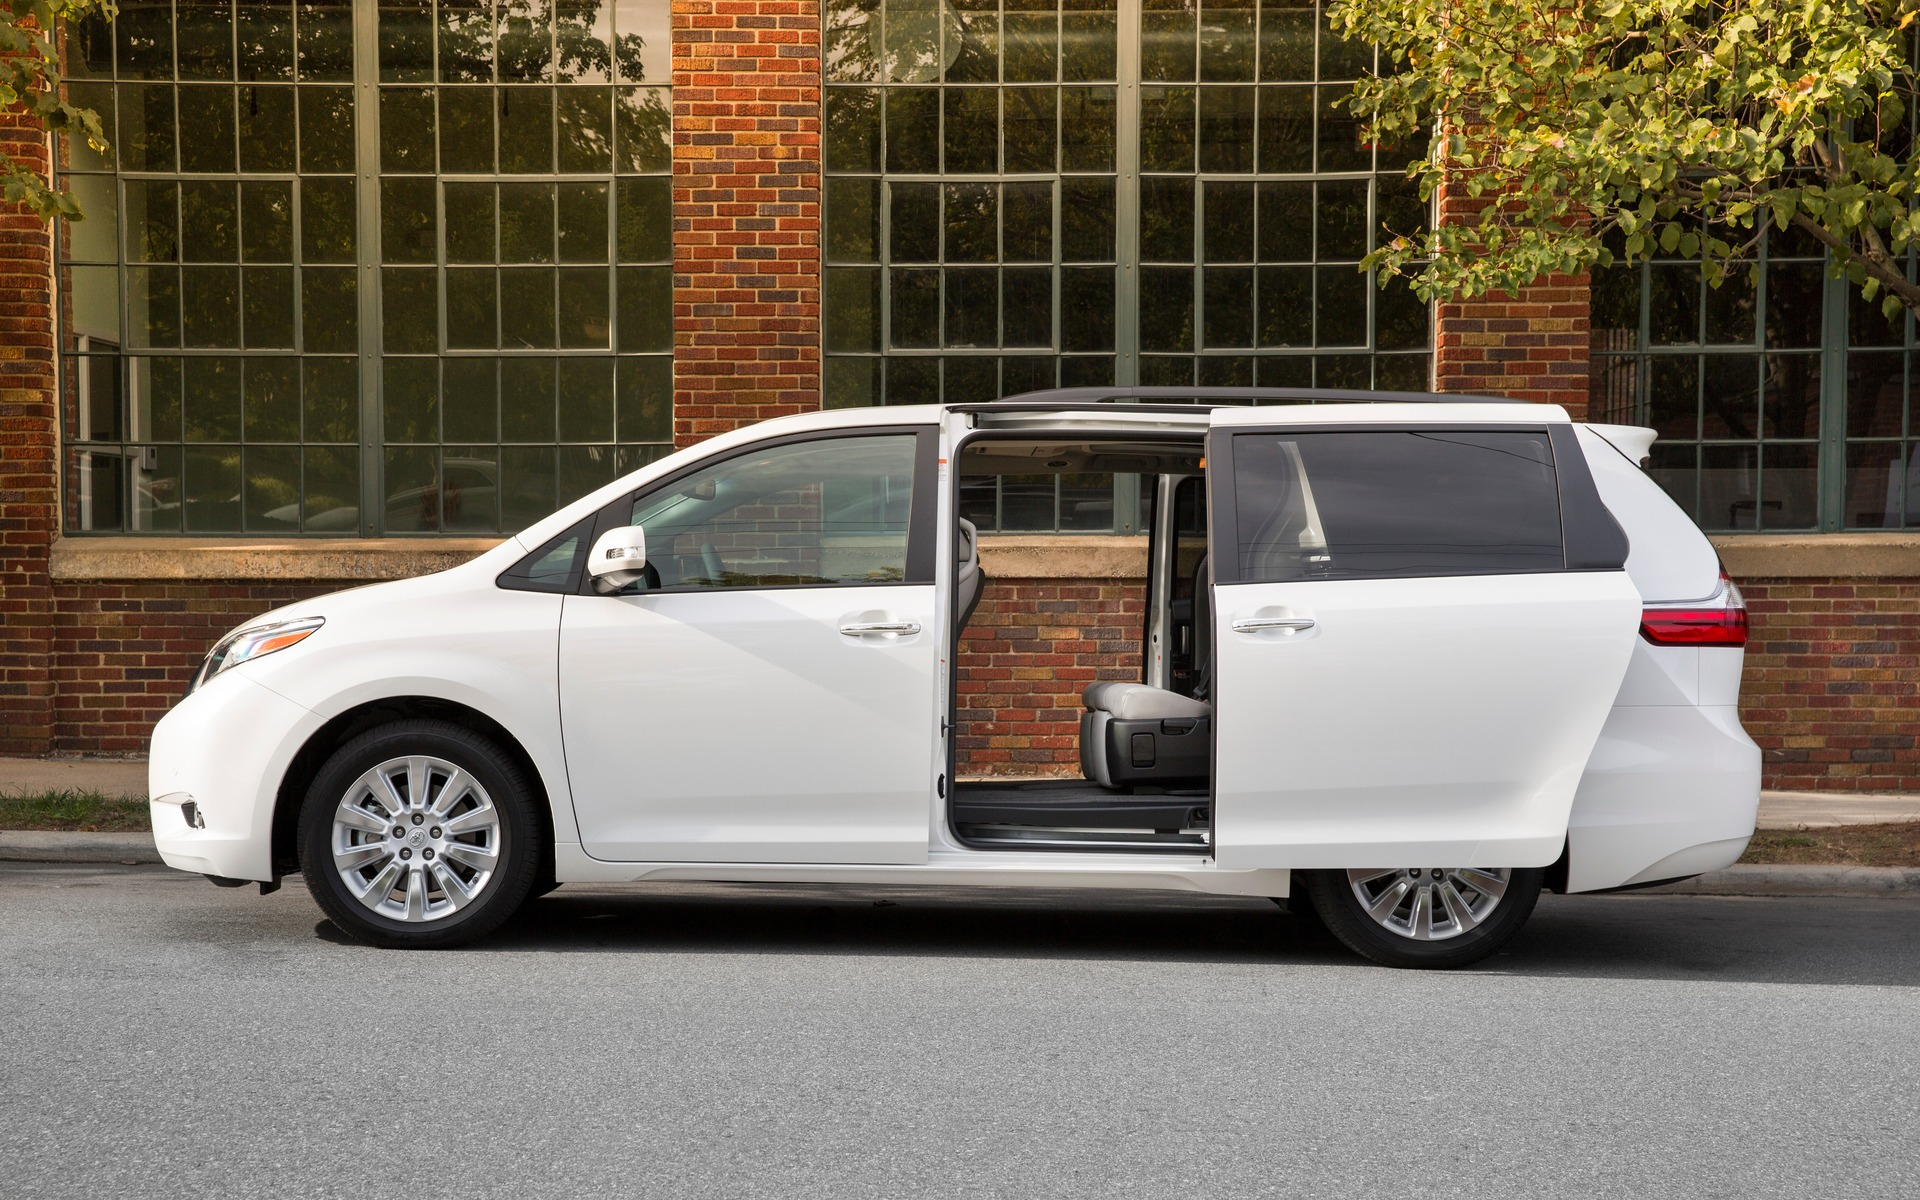 A Recall For The Toyota Sienna And Its Power Sliding Doors The Car